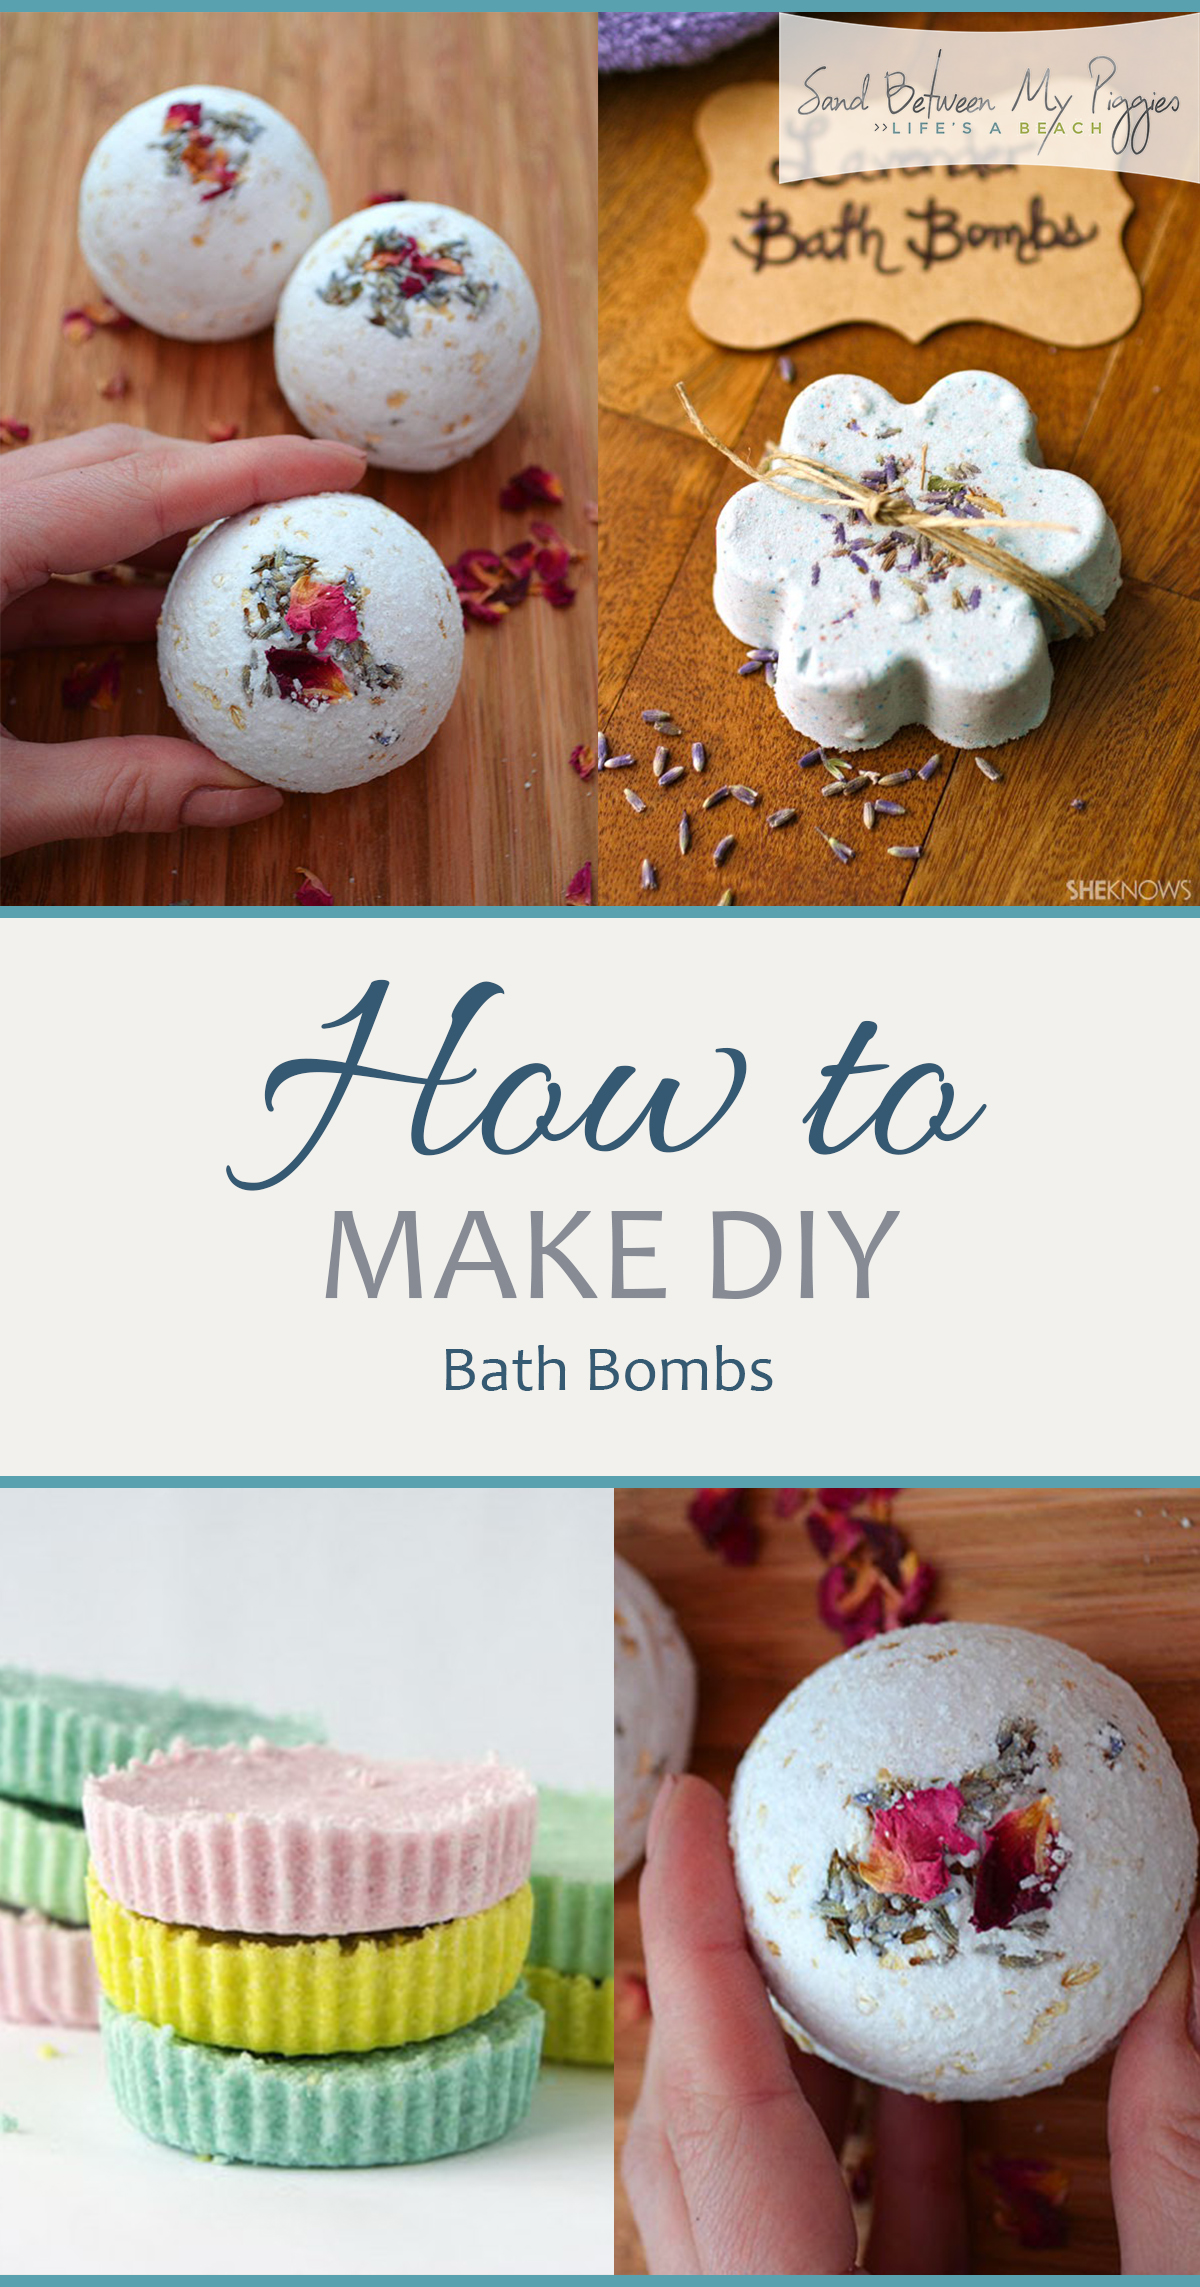 DIY Bath Bombs, How to Make DIY Bath Bombs, Craft Ideas, Easy Homemade Bathbombs, Handmade Bath Bombs, Popular Pin